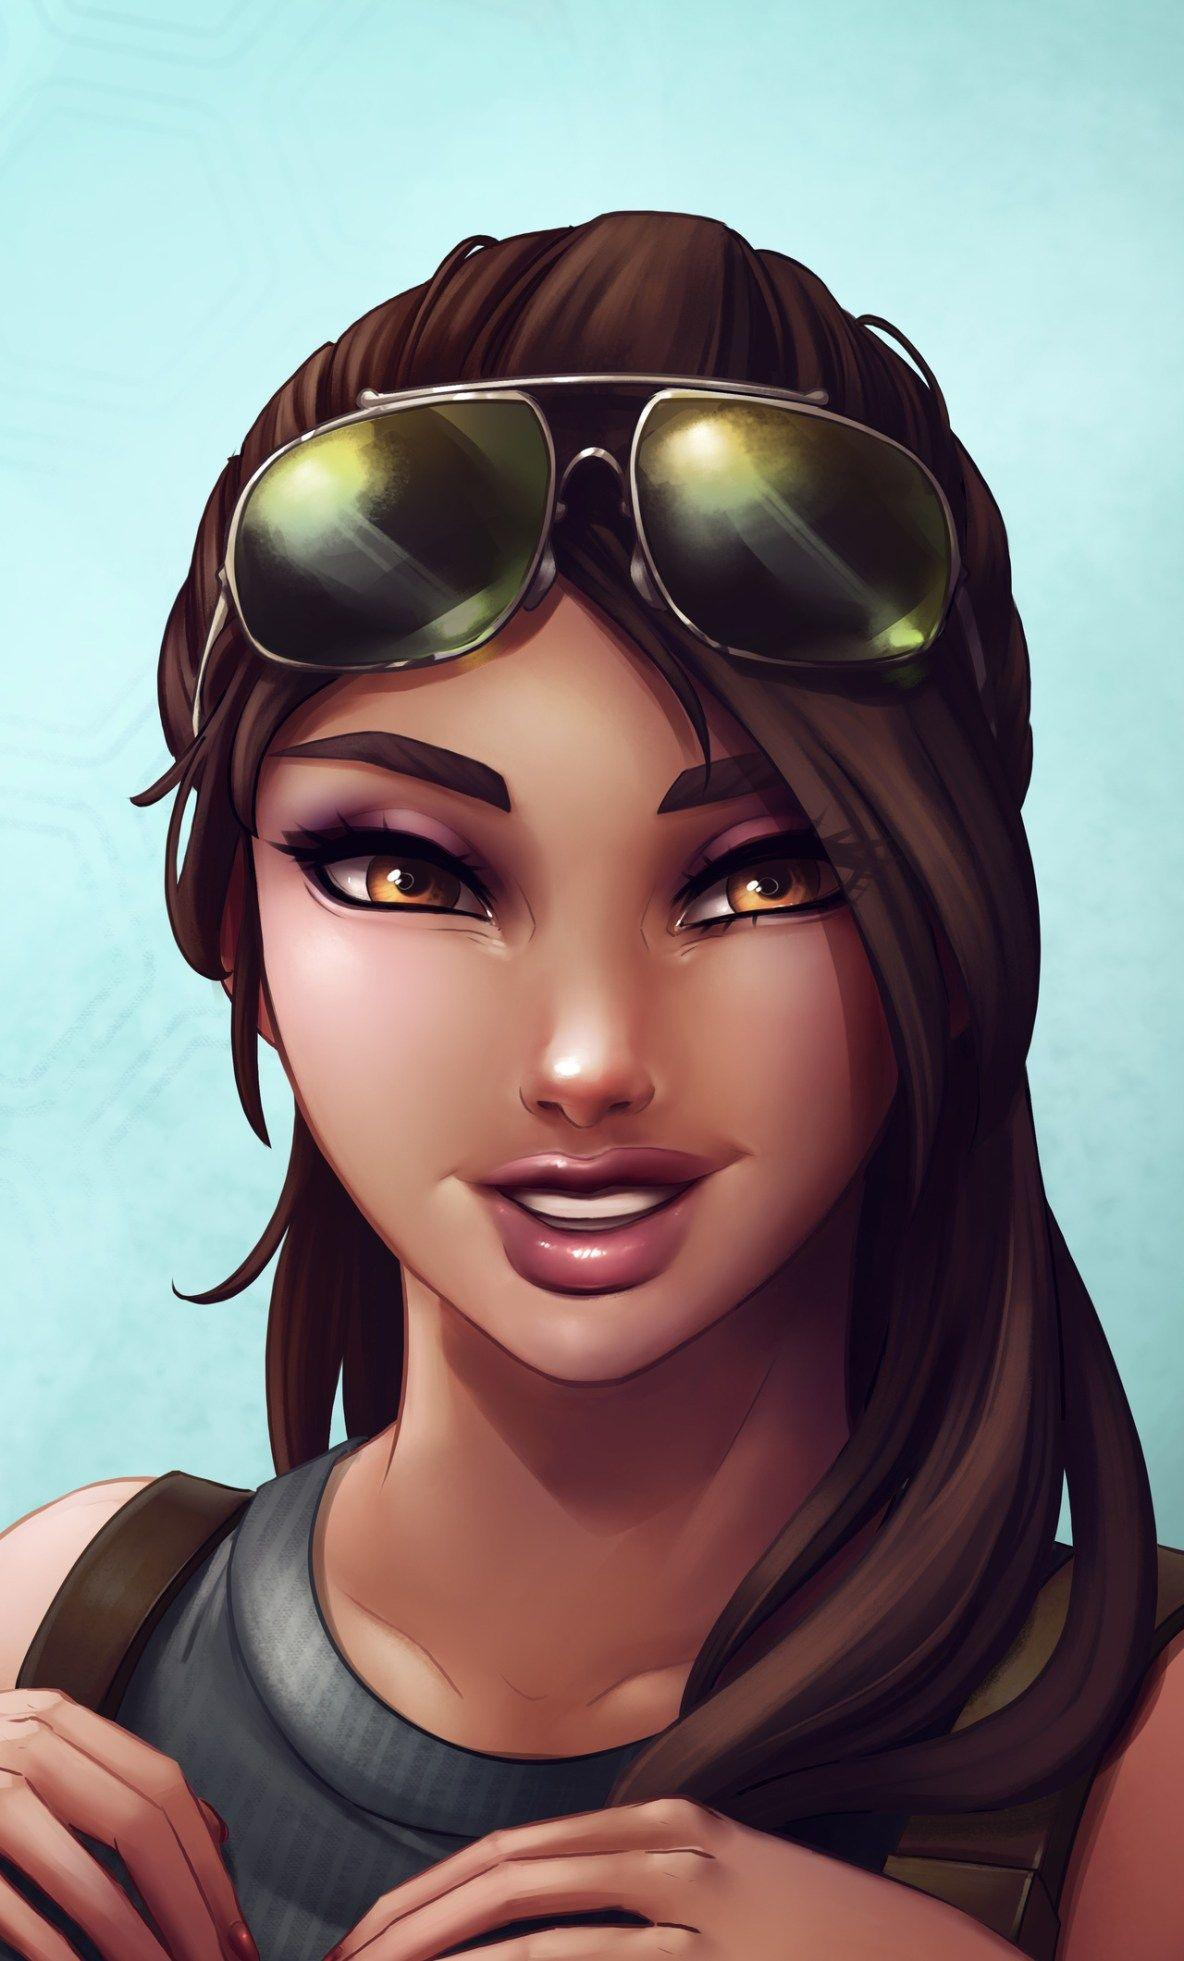 Fortnite Girl Wallpapers - Top Free Fortnite Girl Backgrounds ...